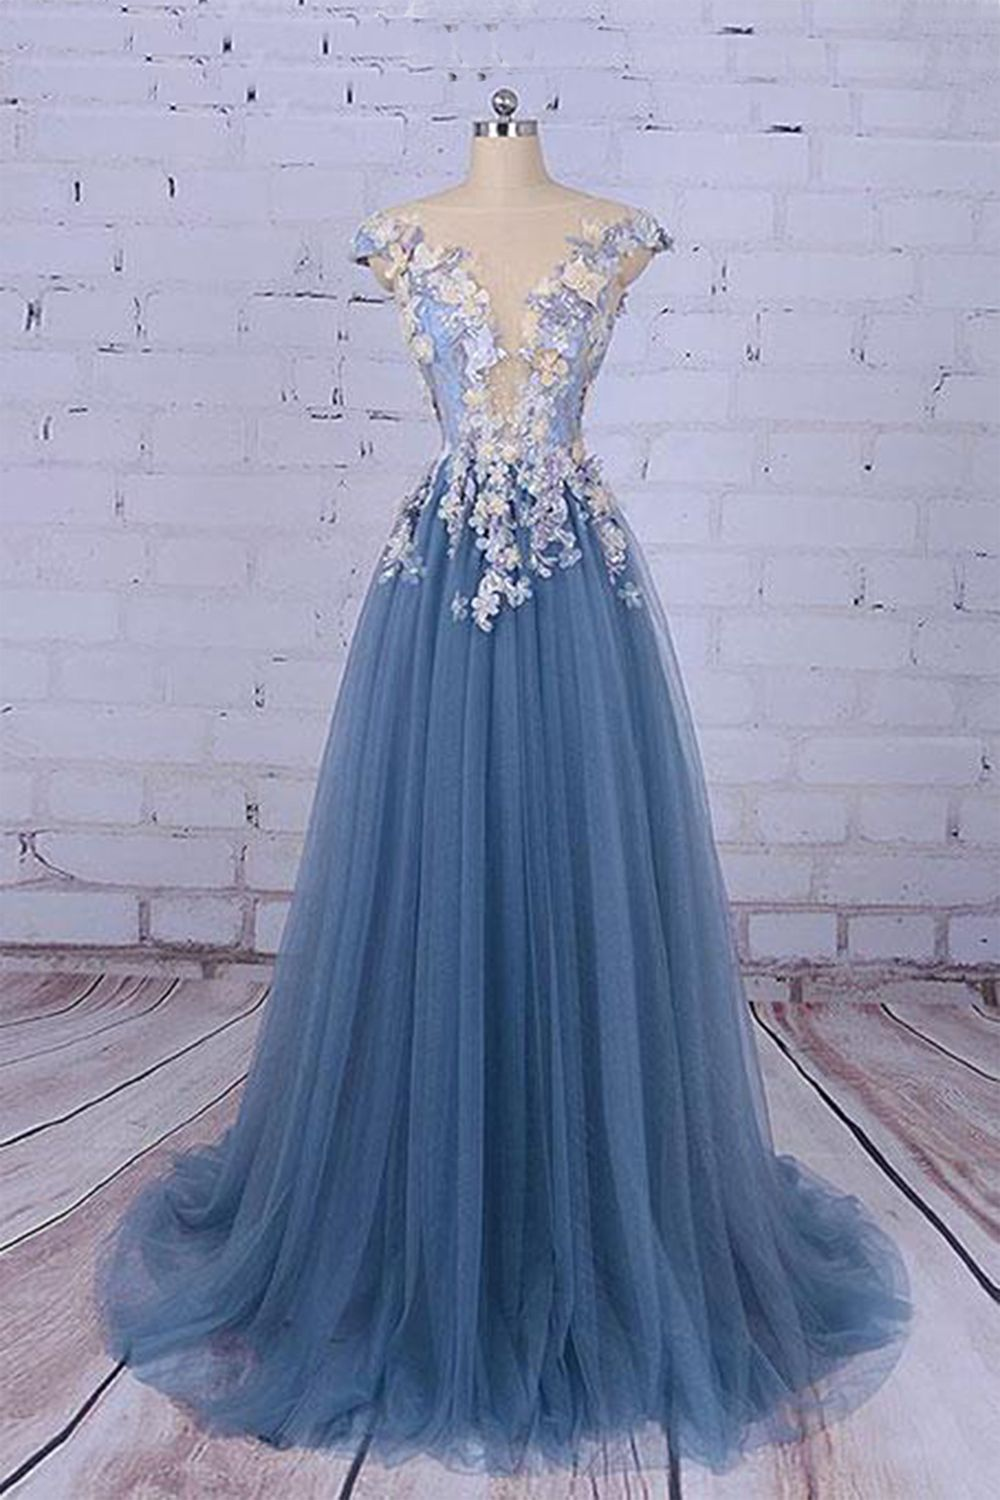 Pin by alisa william on prom dresses pinterest prom tulle